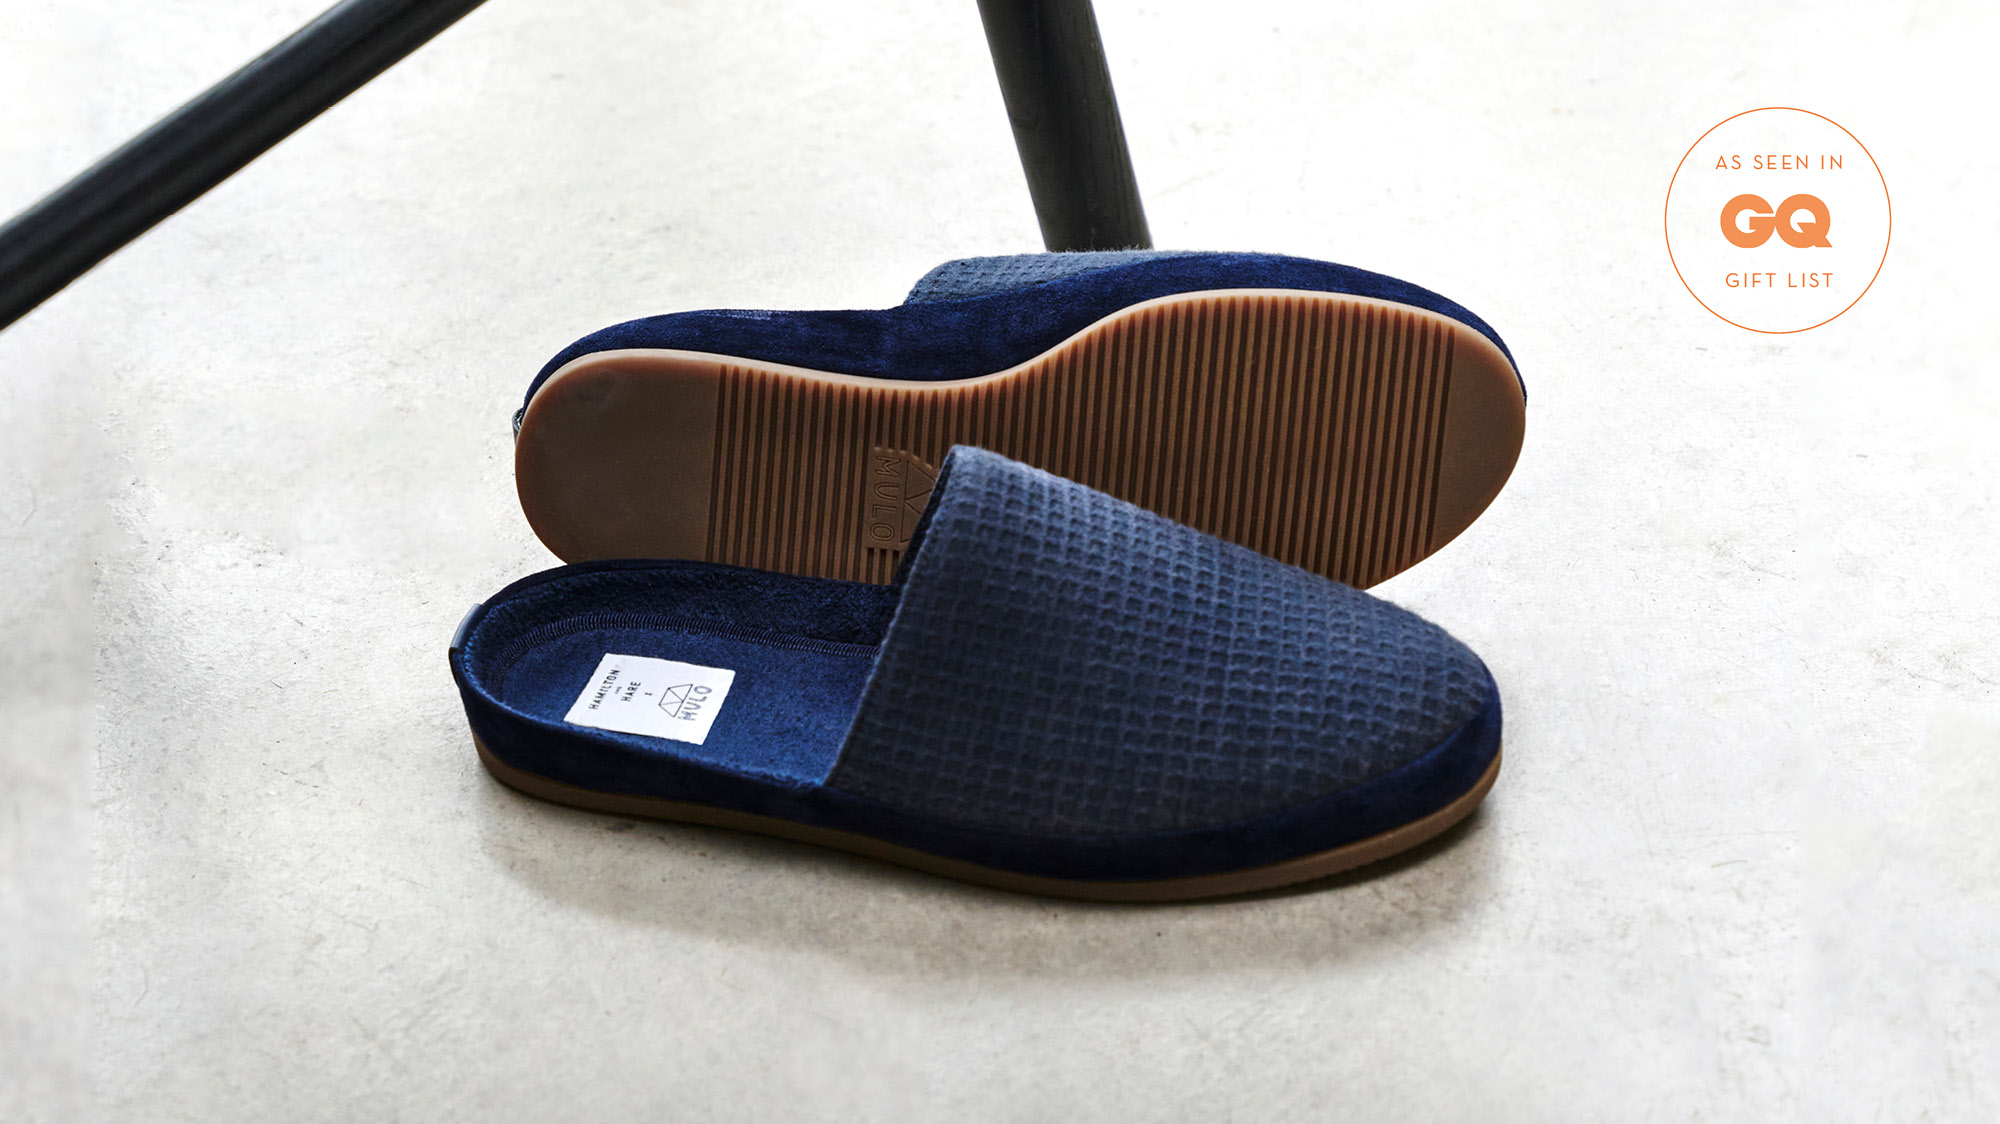 Limited Edition Mens Slippers - Backless Blue Slippers - GQ gift list